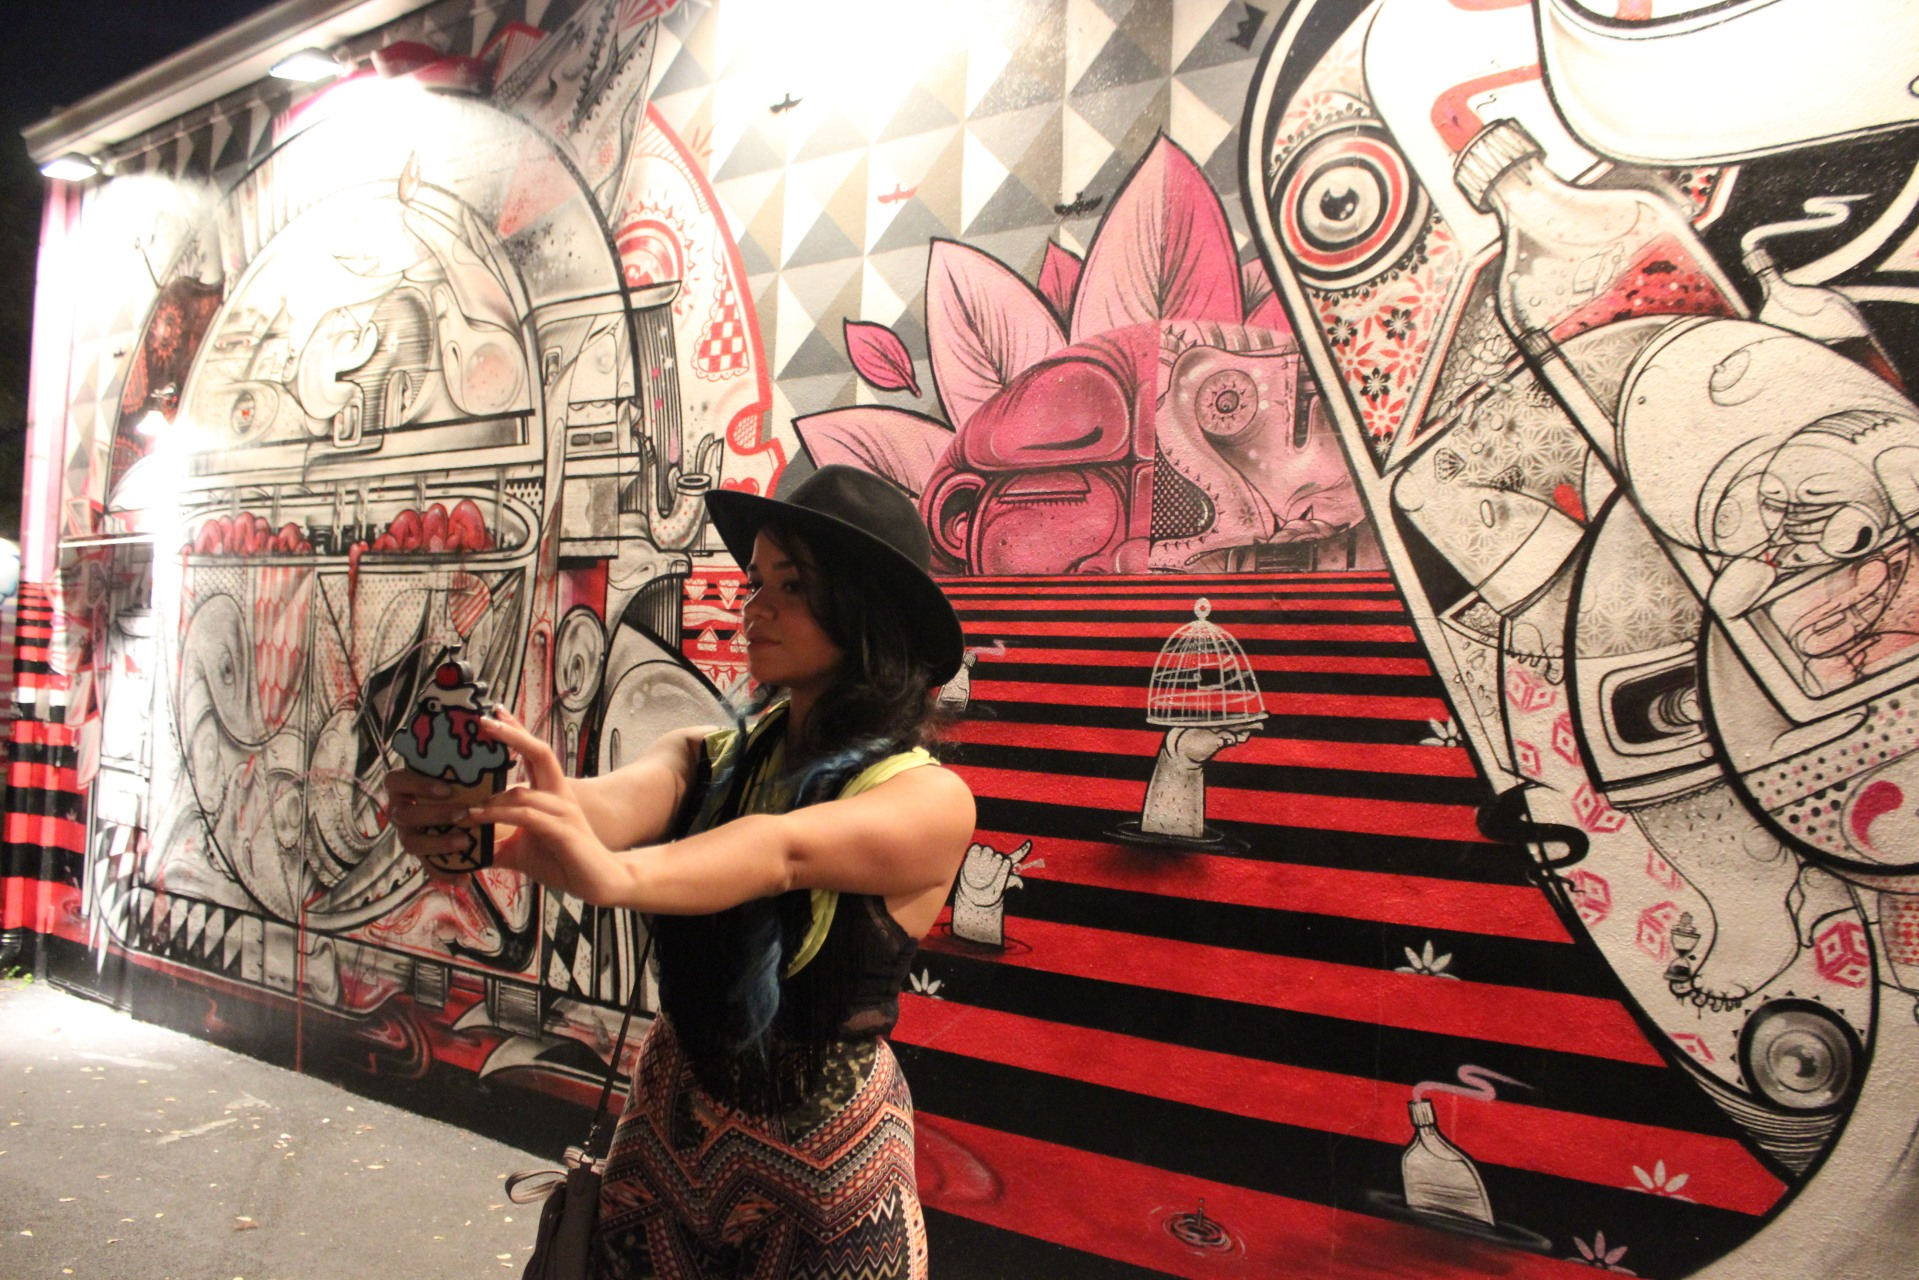 #Selfie at Wynwood Wall Art Miami  photo by JMarcio Batista